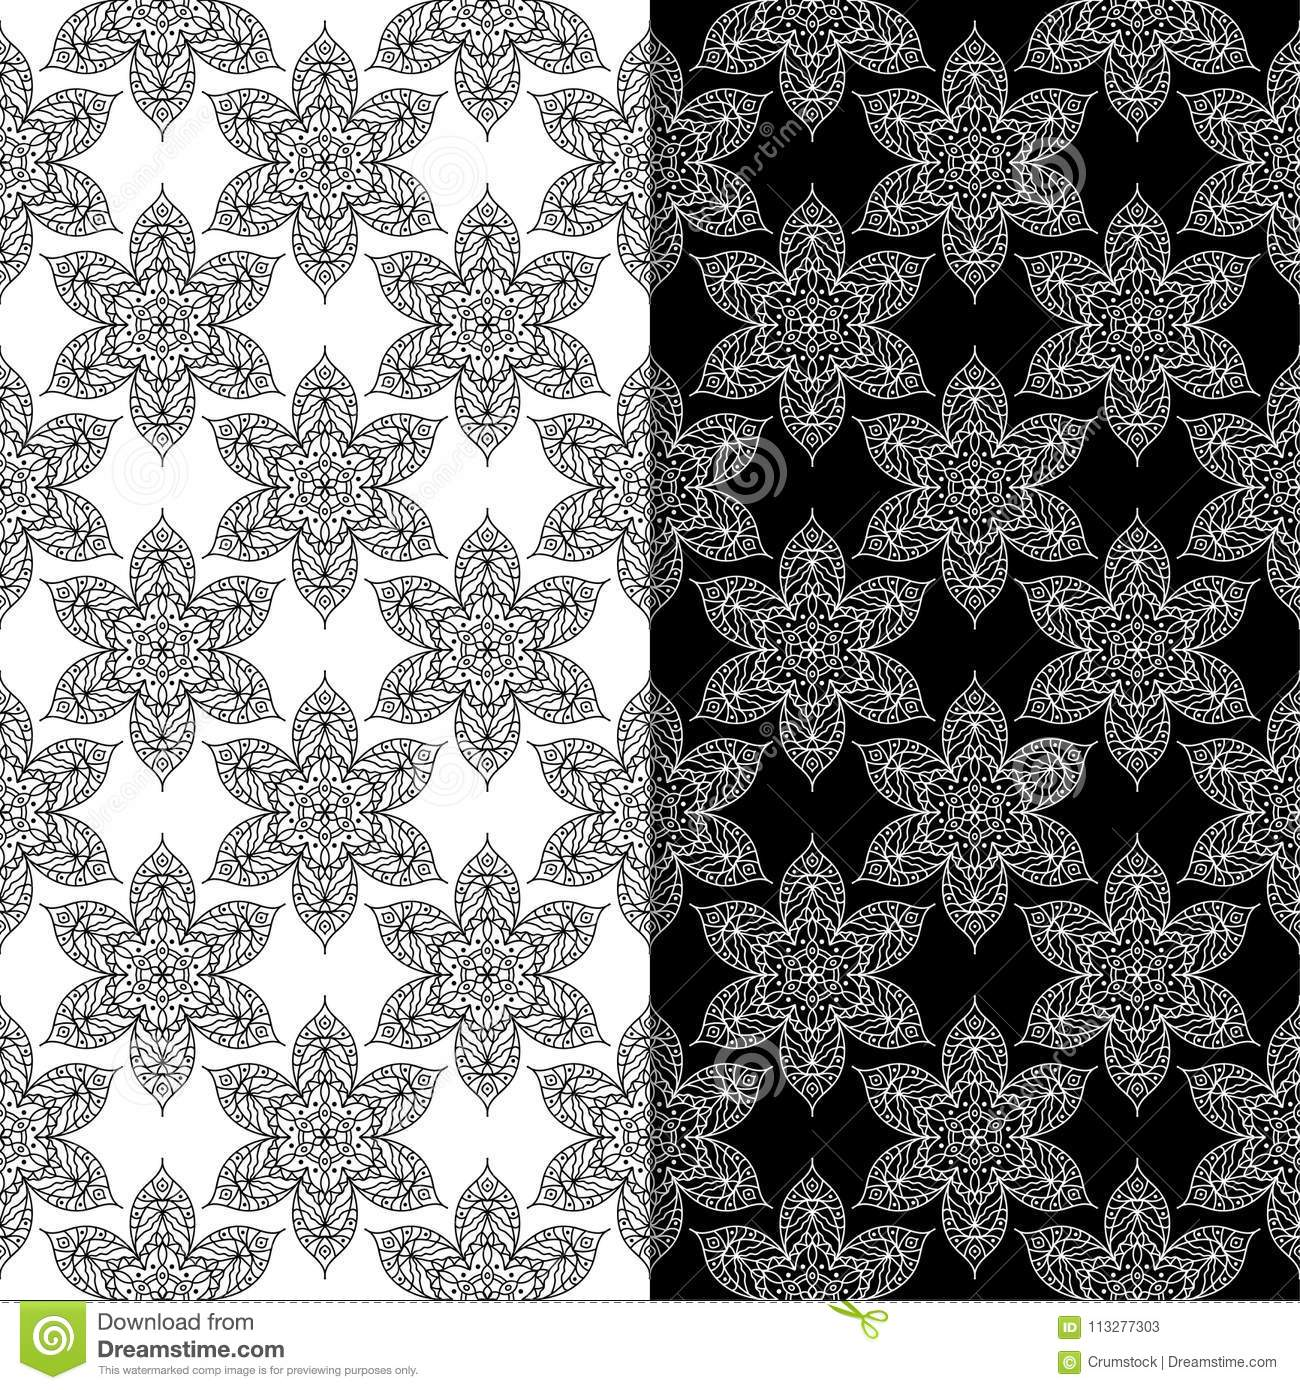 Black and white floral seamless patterns set of backgrounds stock black and white floral backgrounds set of seamless patterns for textile and wallpapers mightylinksfo